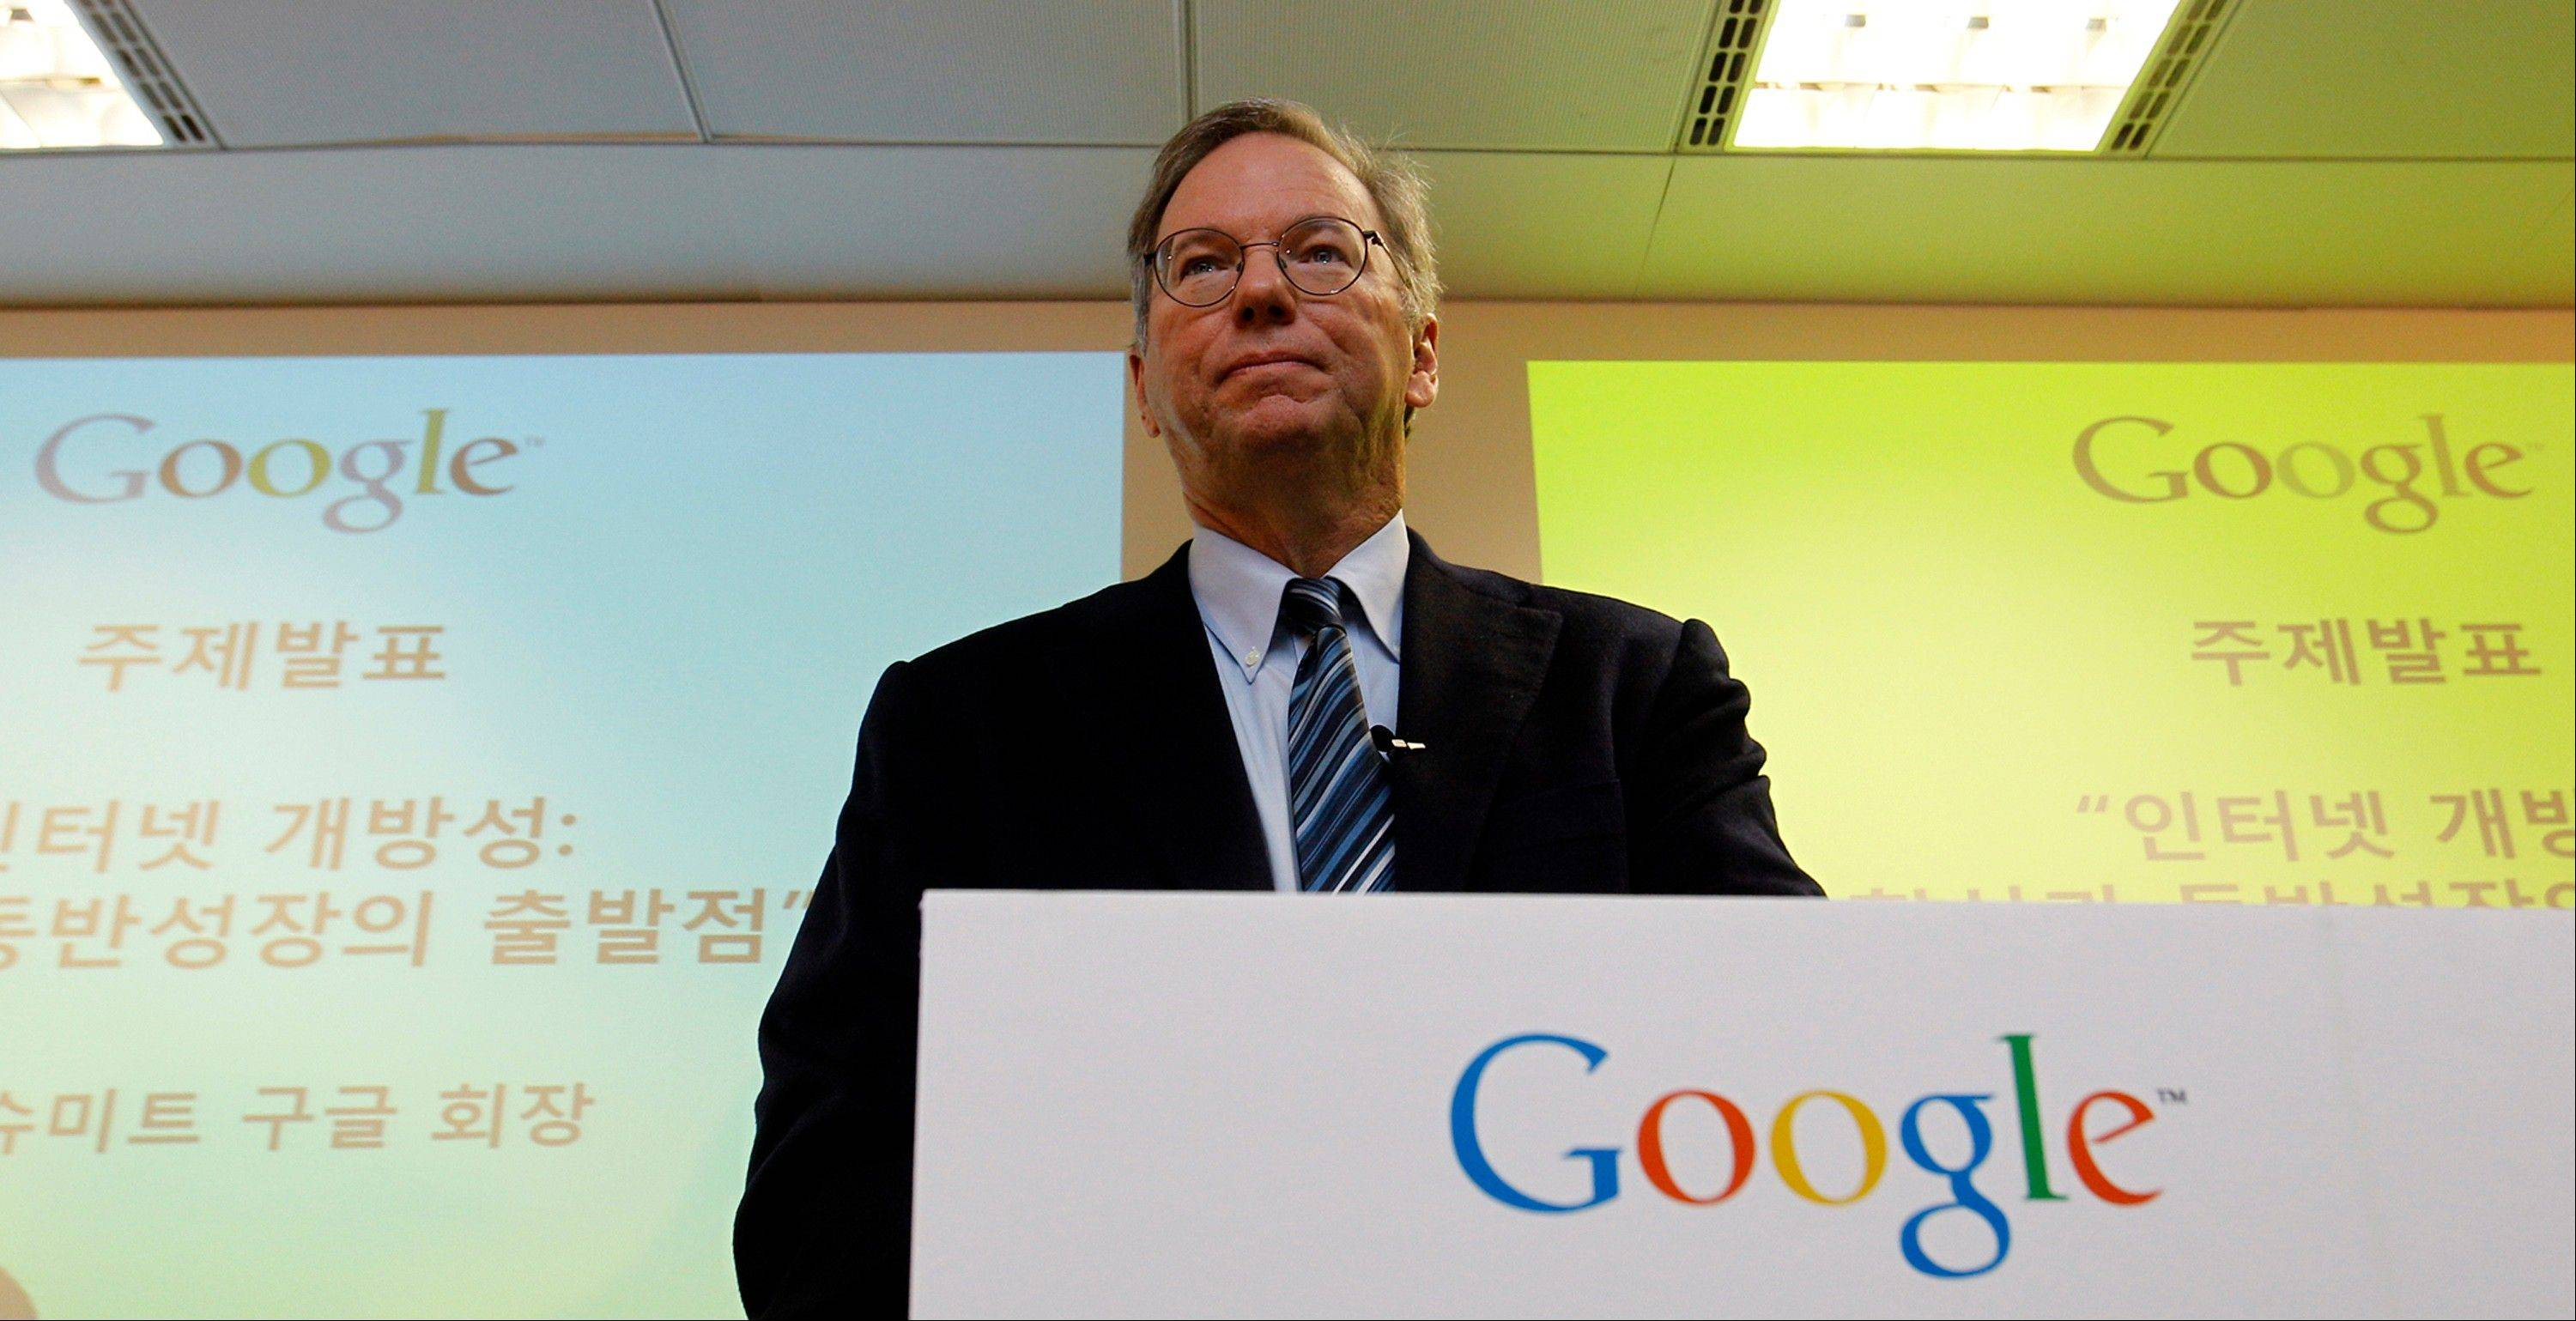 Google chairman Eric Schmidt speaks to the media during a news conference at Google Korea office in Seoul, South Korea, where he defended Google as a great innovator despite Steve Jobs allegations that the Internet search giant stole innovations from the iPhone.